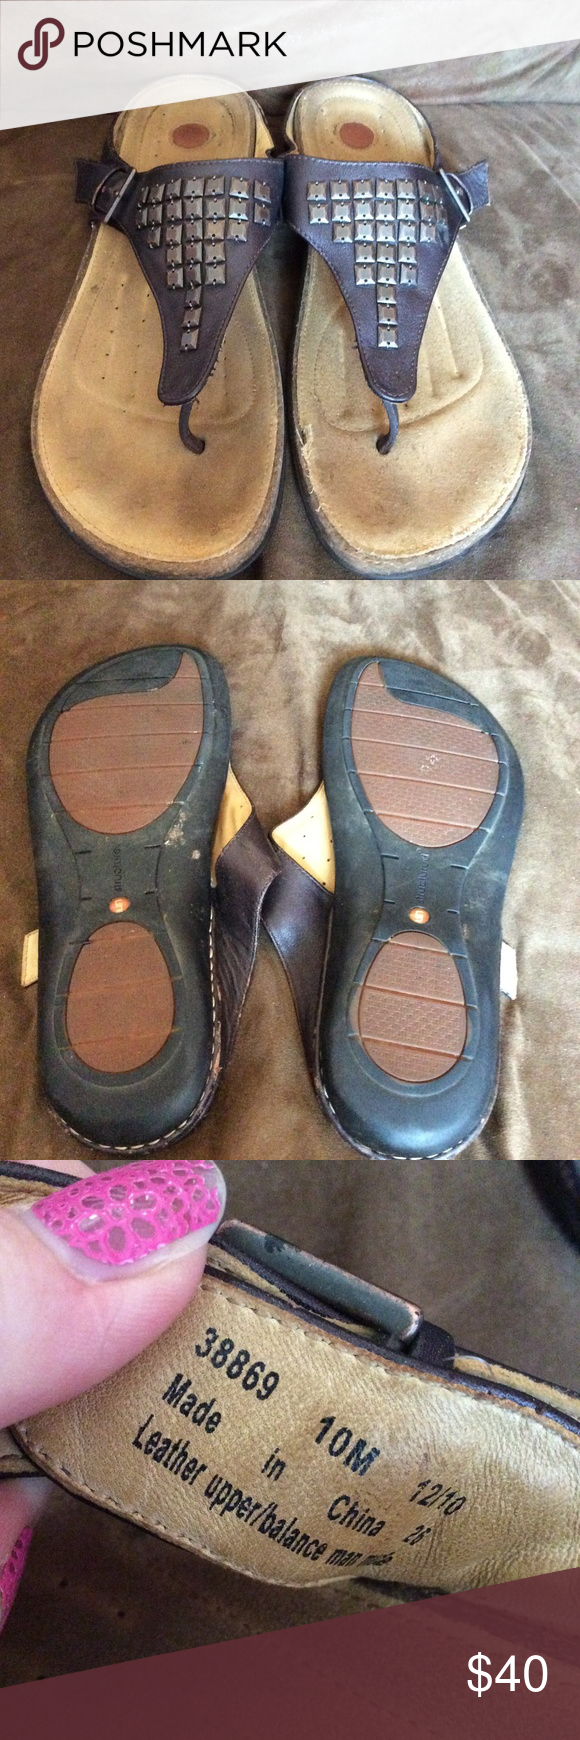 69658f2df244 Clarks Structured Sandals Womens size 10 clarks structured sandals in great  condition very comfy and soft insole cushion bed. Comes from a smoke free  home.